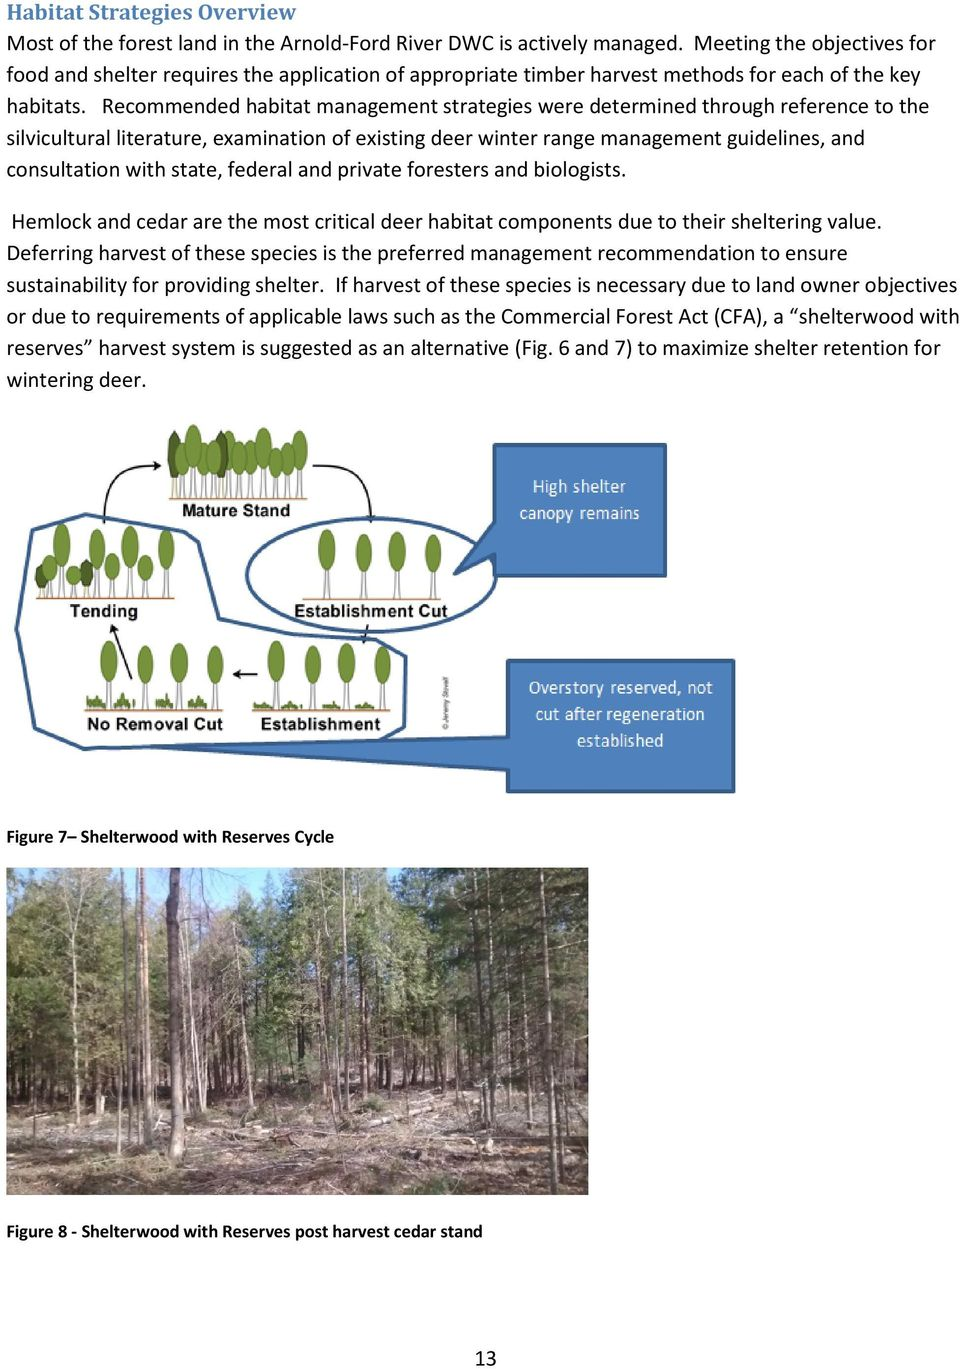 Recommended habitat management strategies were determined through reference to the silvicultural literature, examination of existing deer winter range management guidelines, and consultation with